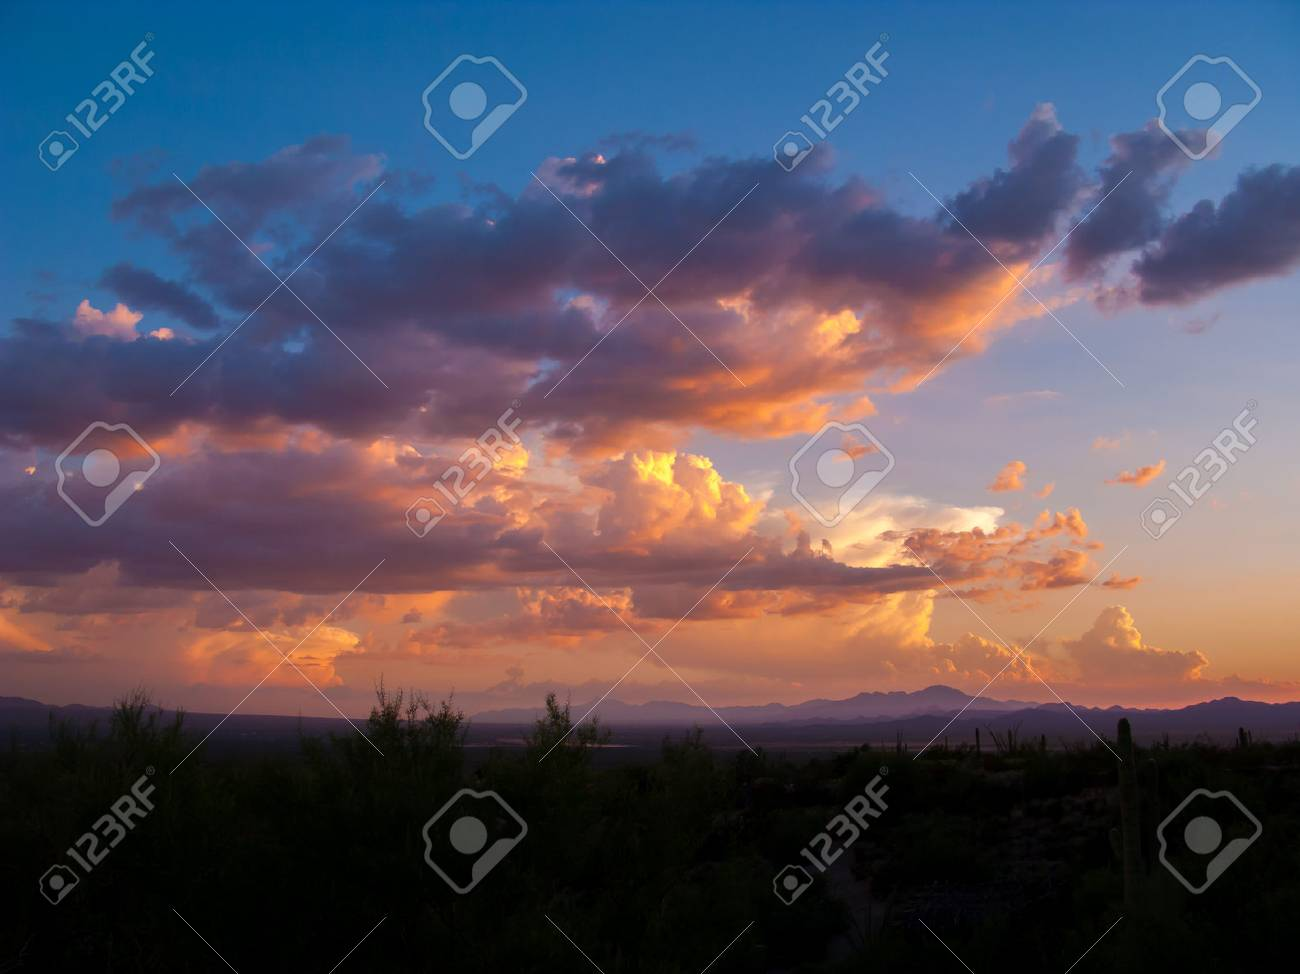 Clouds and Sunset or Sunrise with Silhouette Cactus in the Sonoran Desert - 80852580